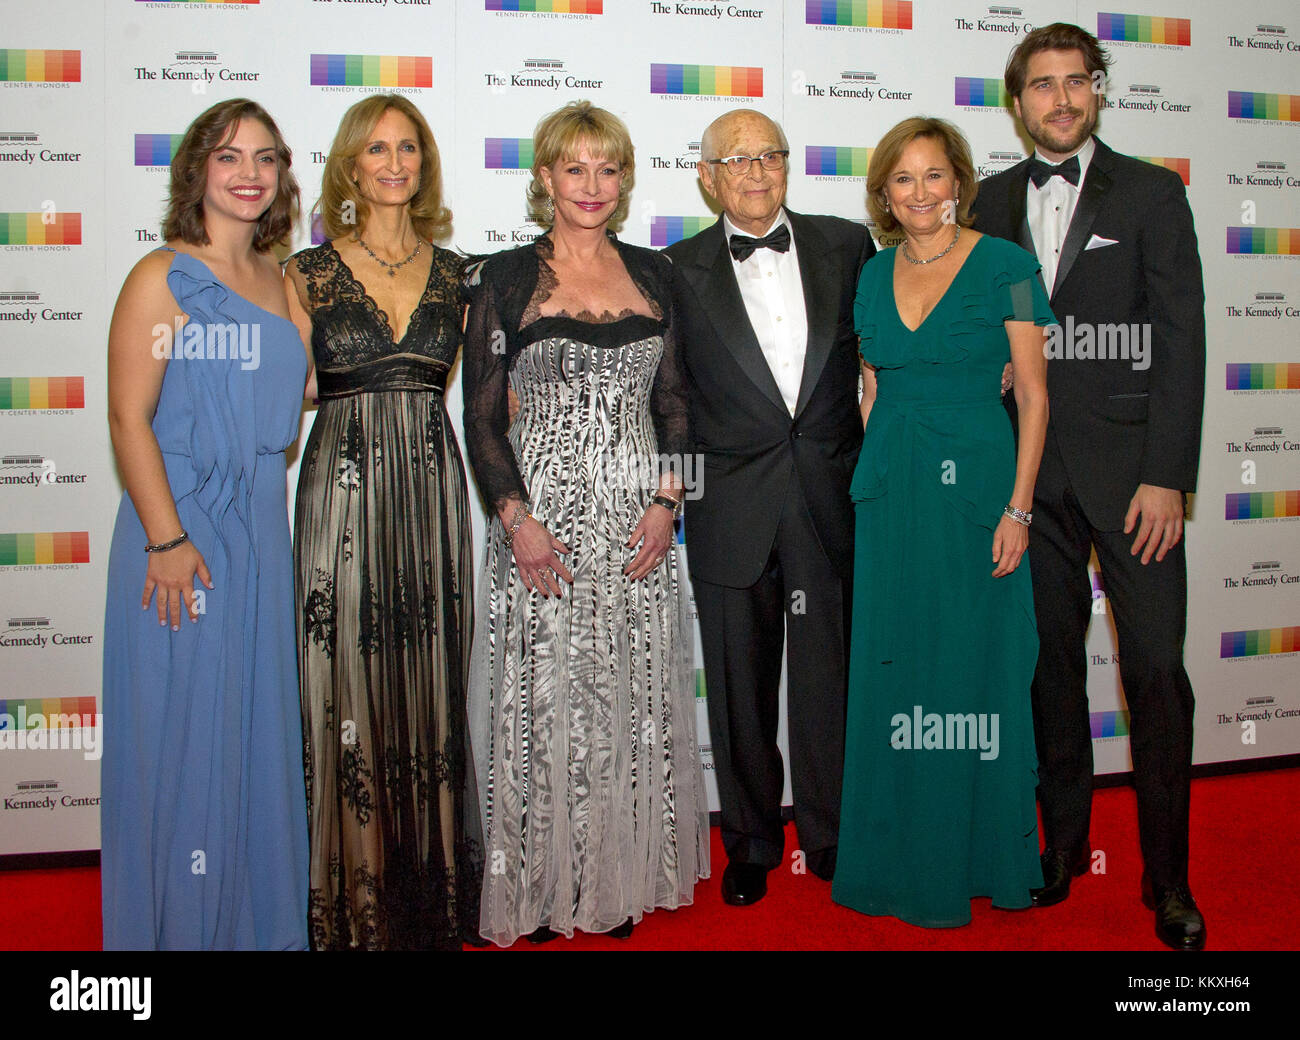 Washington DC, USA. 2nd December, 2017. Norman Lear and his family arrive for the formal Artist's Dinner honoring - Stock Image